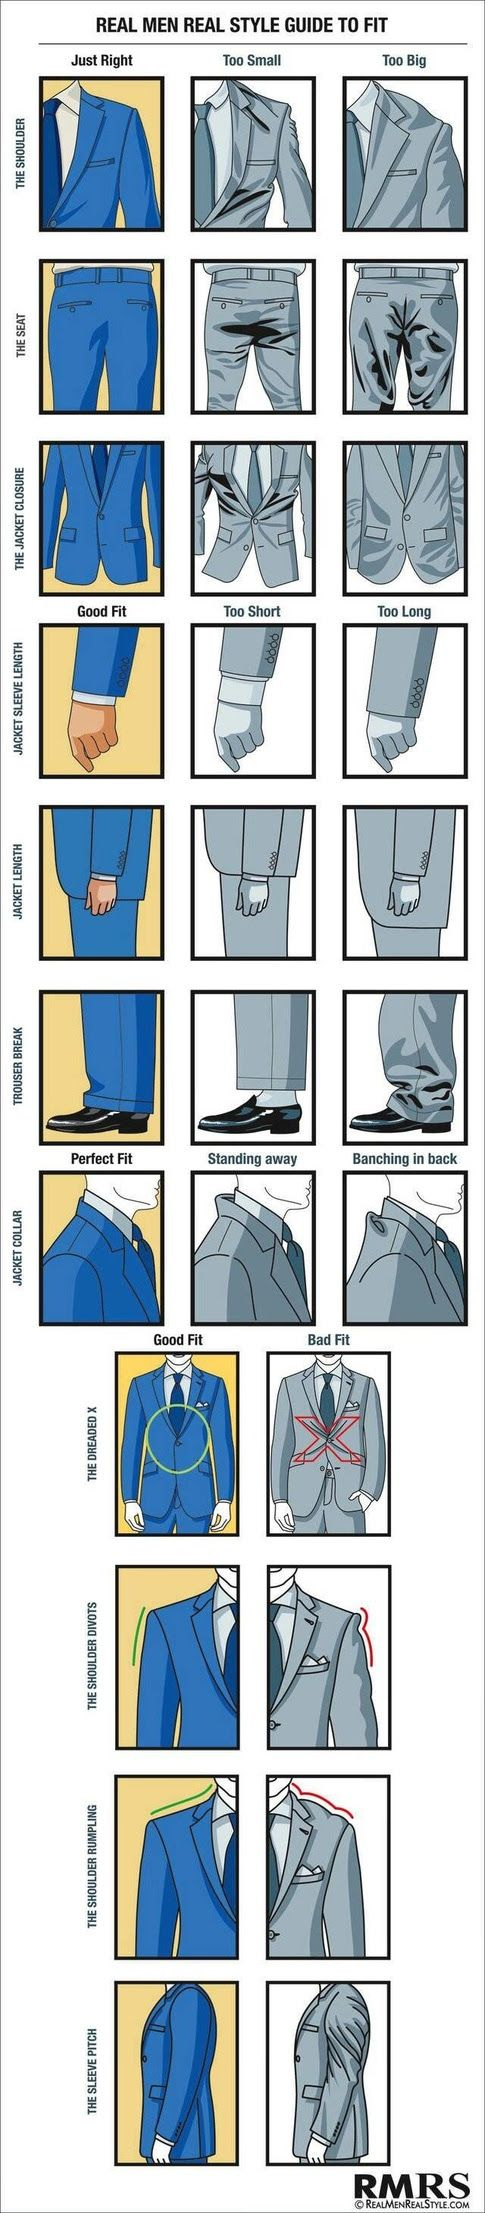 Knowing your suit type